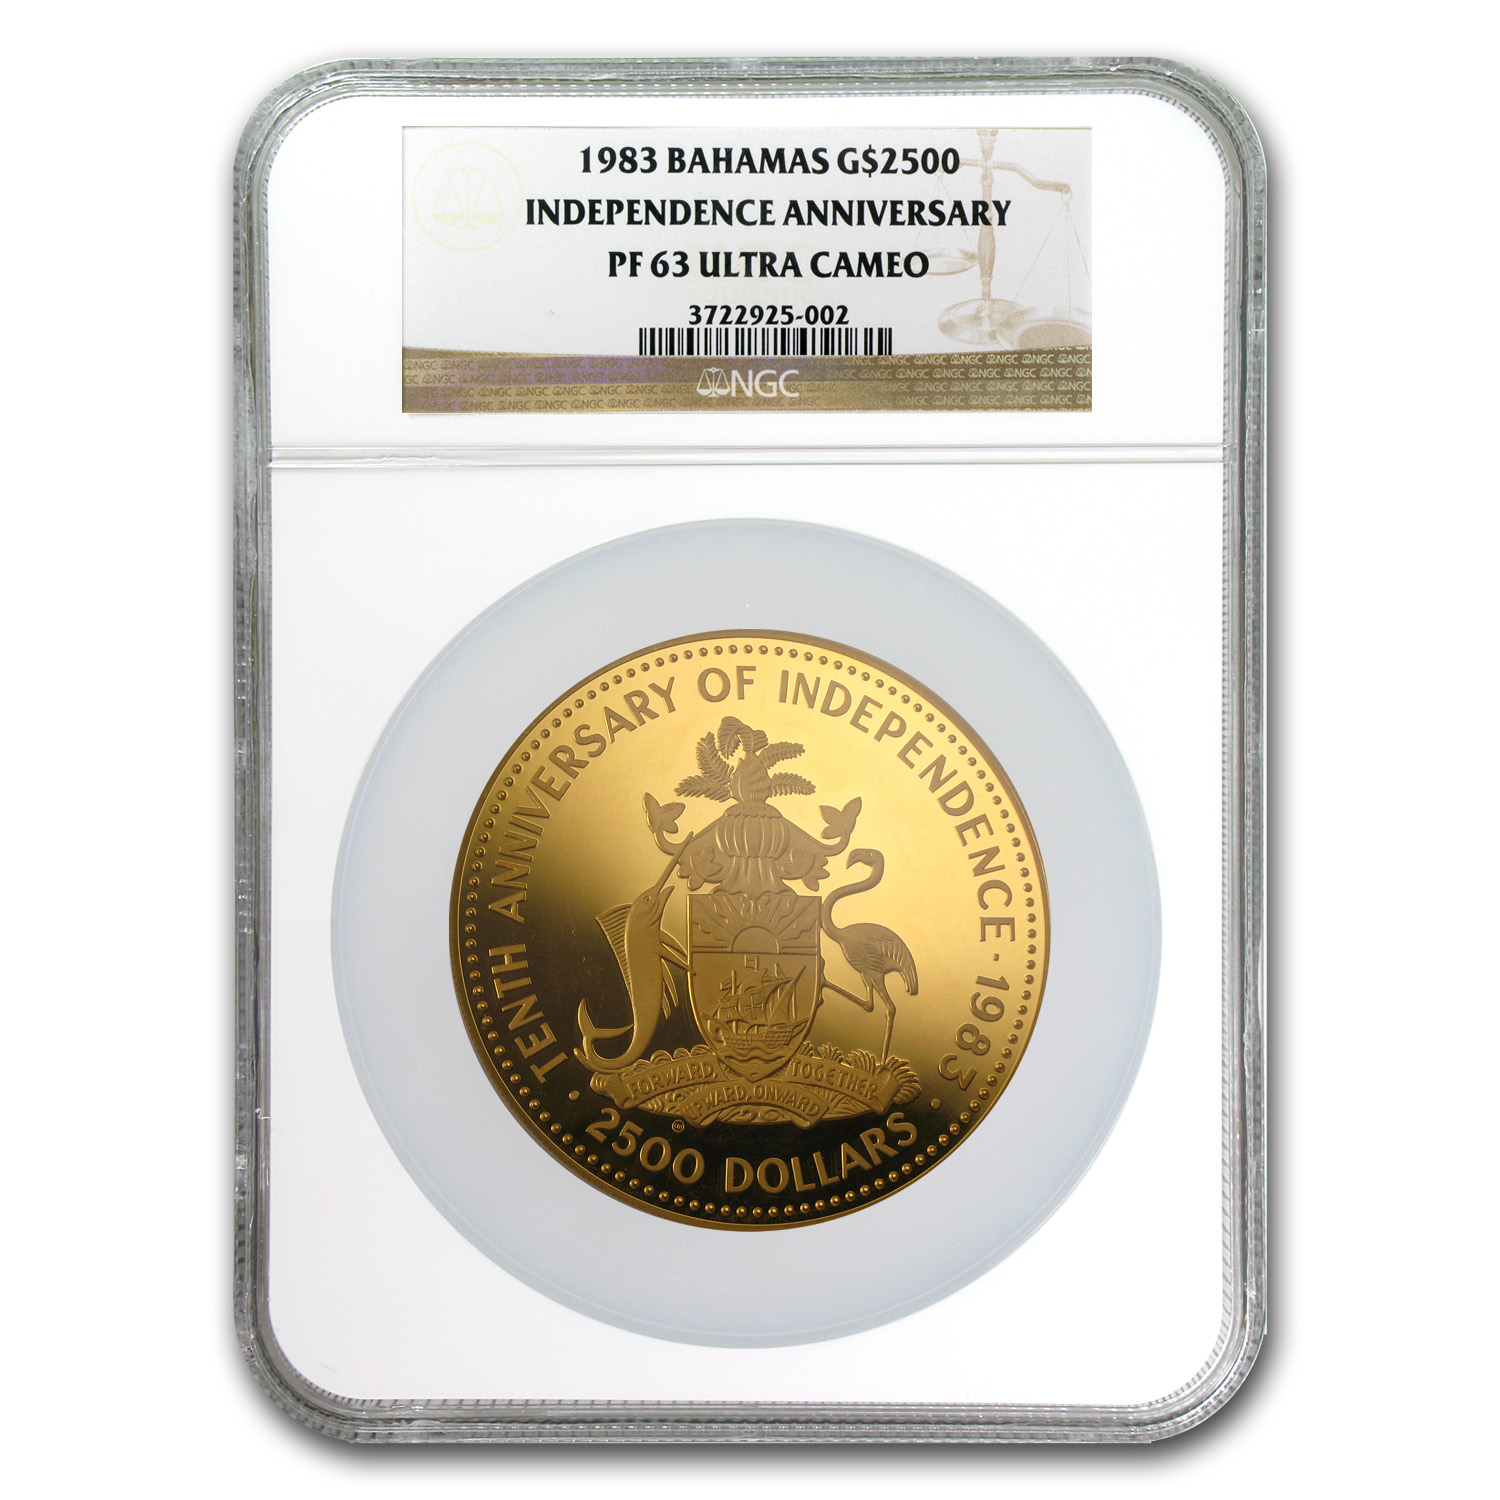 1983 Bahamas 12 oz Proof Gold $2500 Independence PF-63 NGC